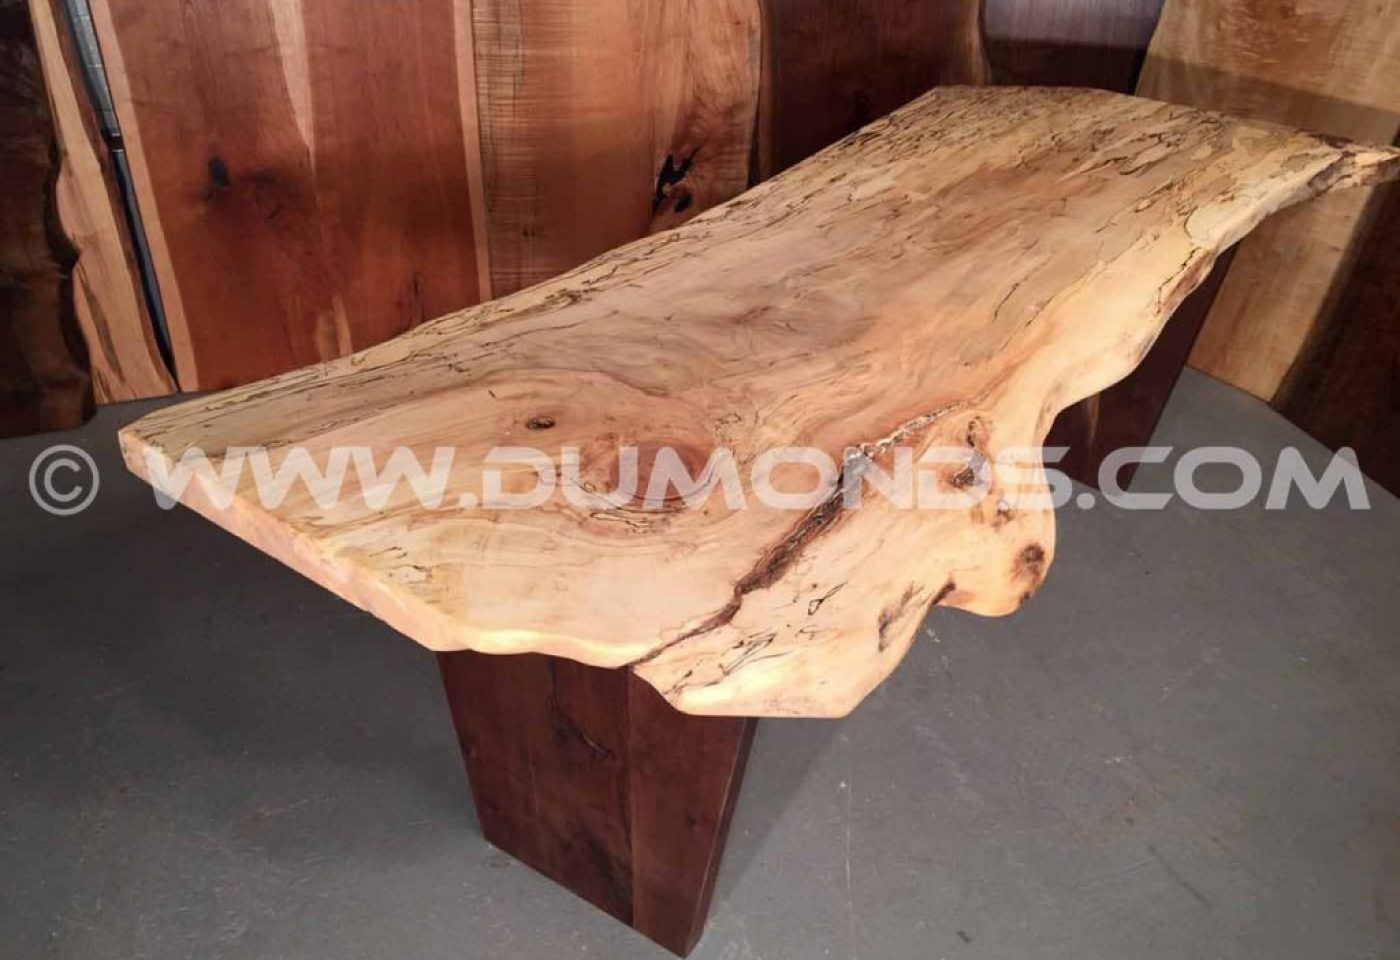 SALVAGED, RECYCLED CURLY SPALTED MAPLE FROM URDAN MARYLAND TREE